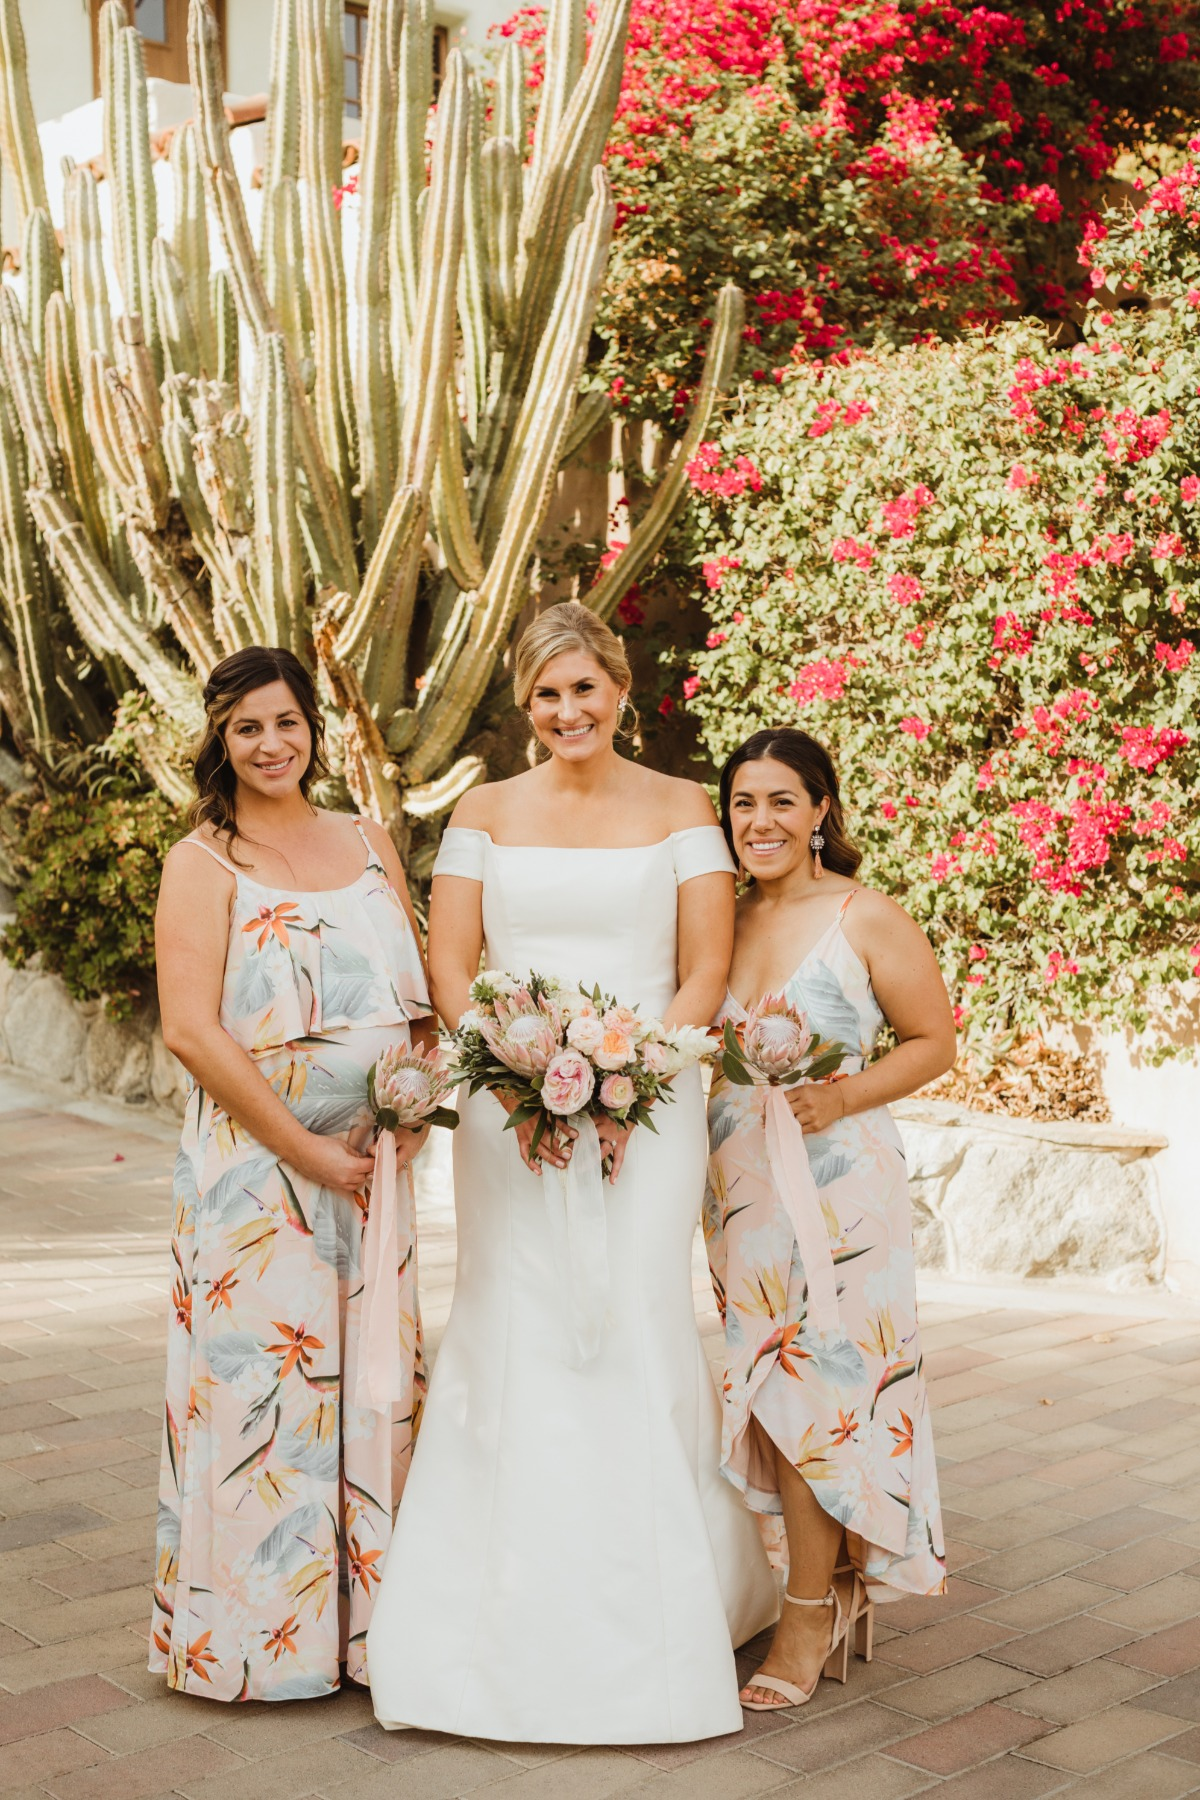 Flower bridesmaid dresses